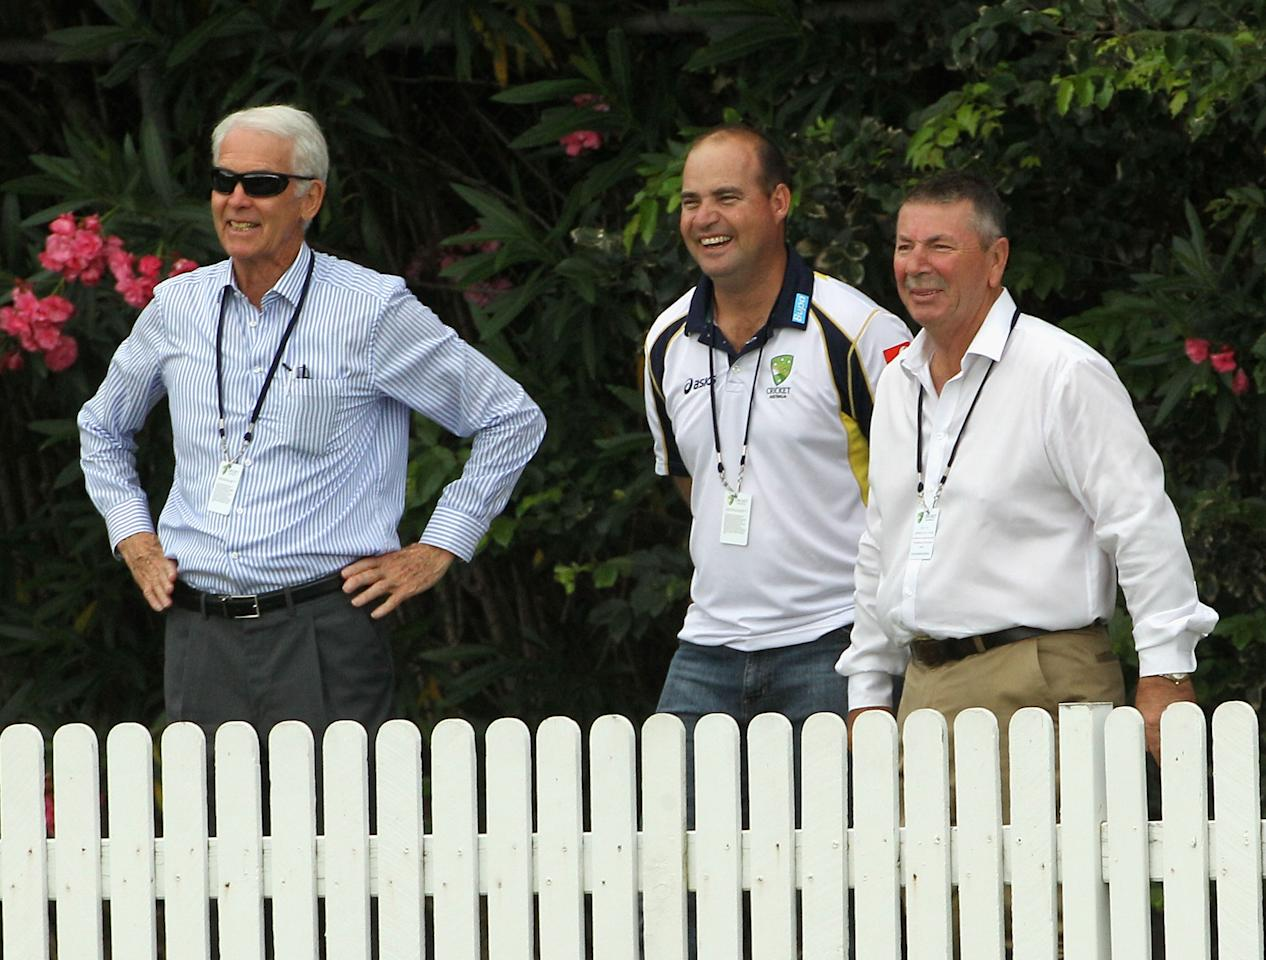 BRISBANE, AUSTRALIA - NOVEMBER 26:  (L - R) Australian Chairman of Selectors John Inverarity, Australian Coach Micky Arthur and Selector Rod Marsh chat on the boundary during day three of the International Tour Match between Australia A and New Zealand at Allan Border Field on November 26, 2011 in Brisbane, Australia.  (Photo by Hamish Blair/Getty Images)